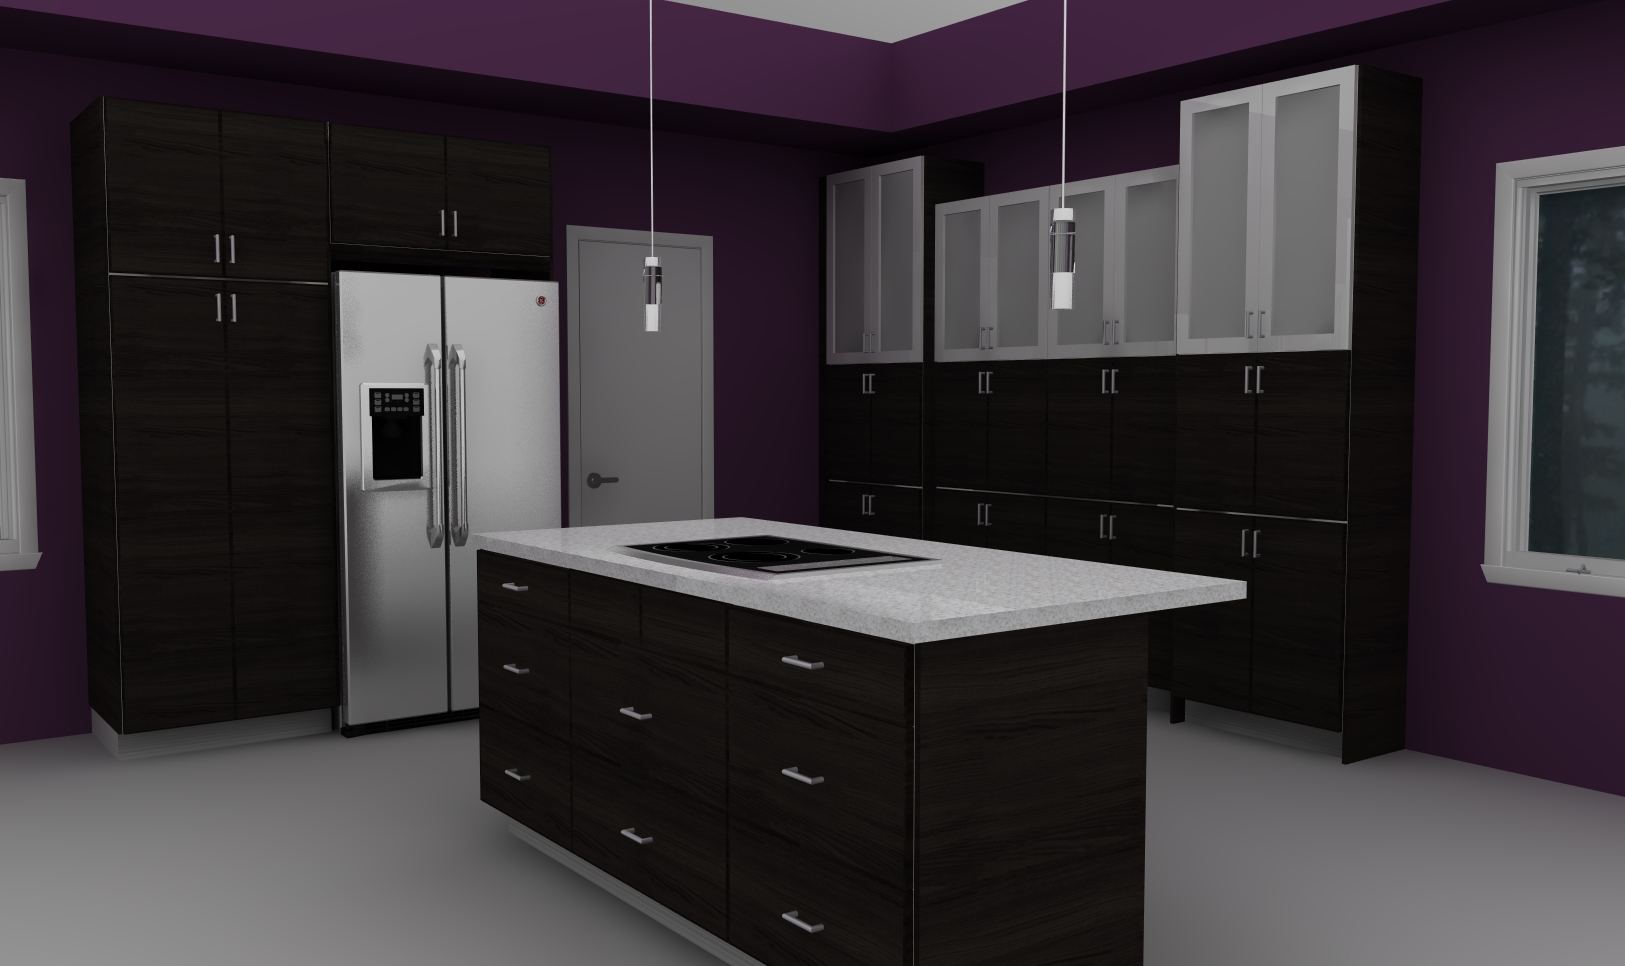 luxurious modern black kitchen with ikea cabinets